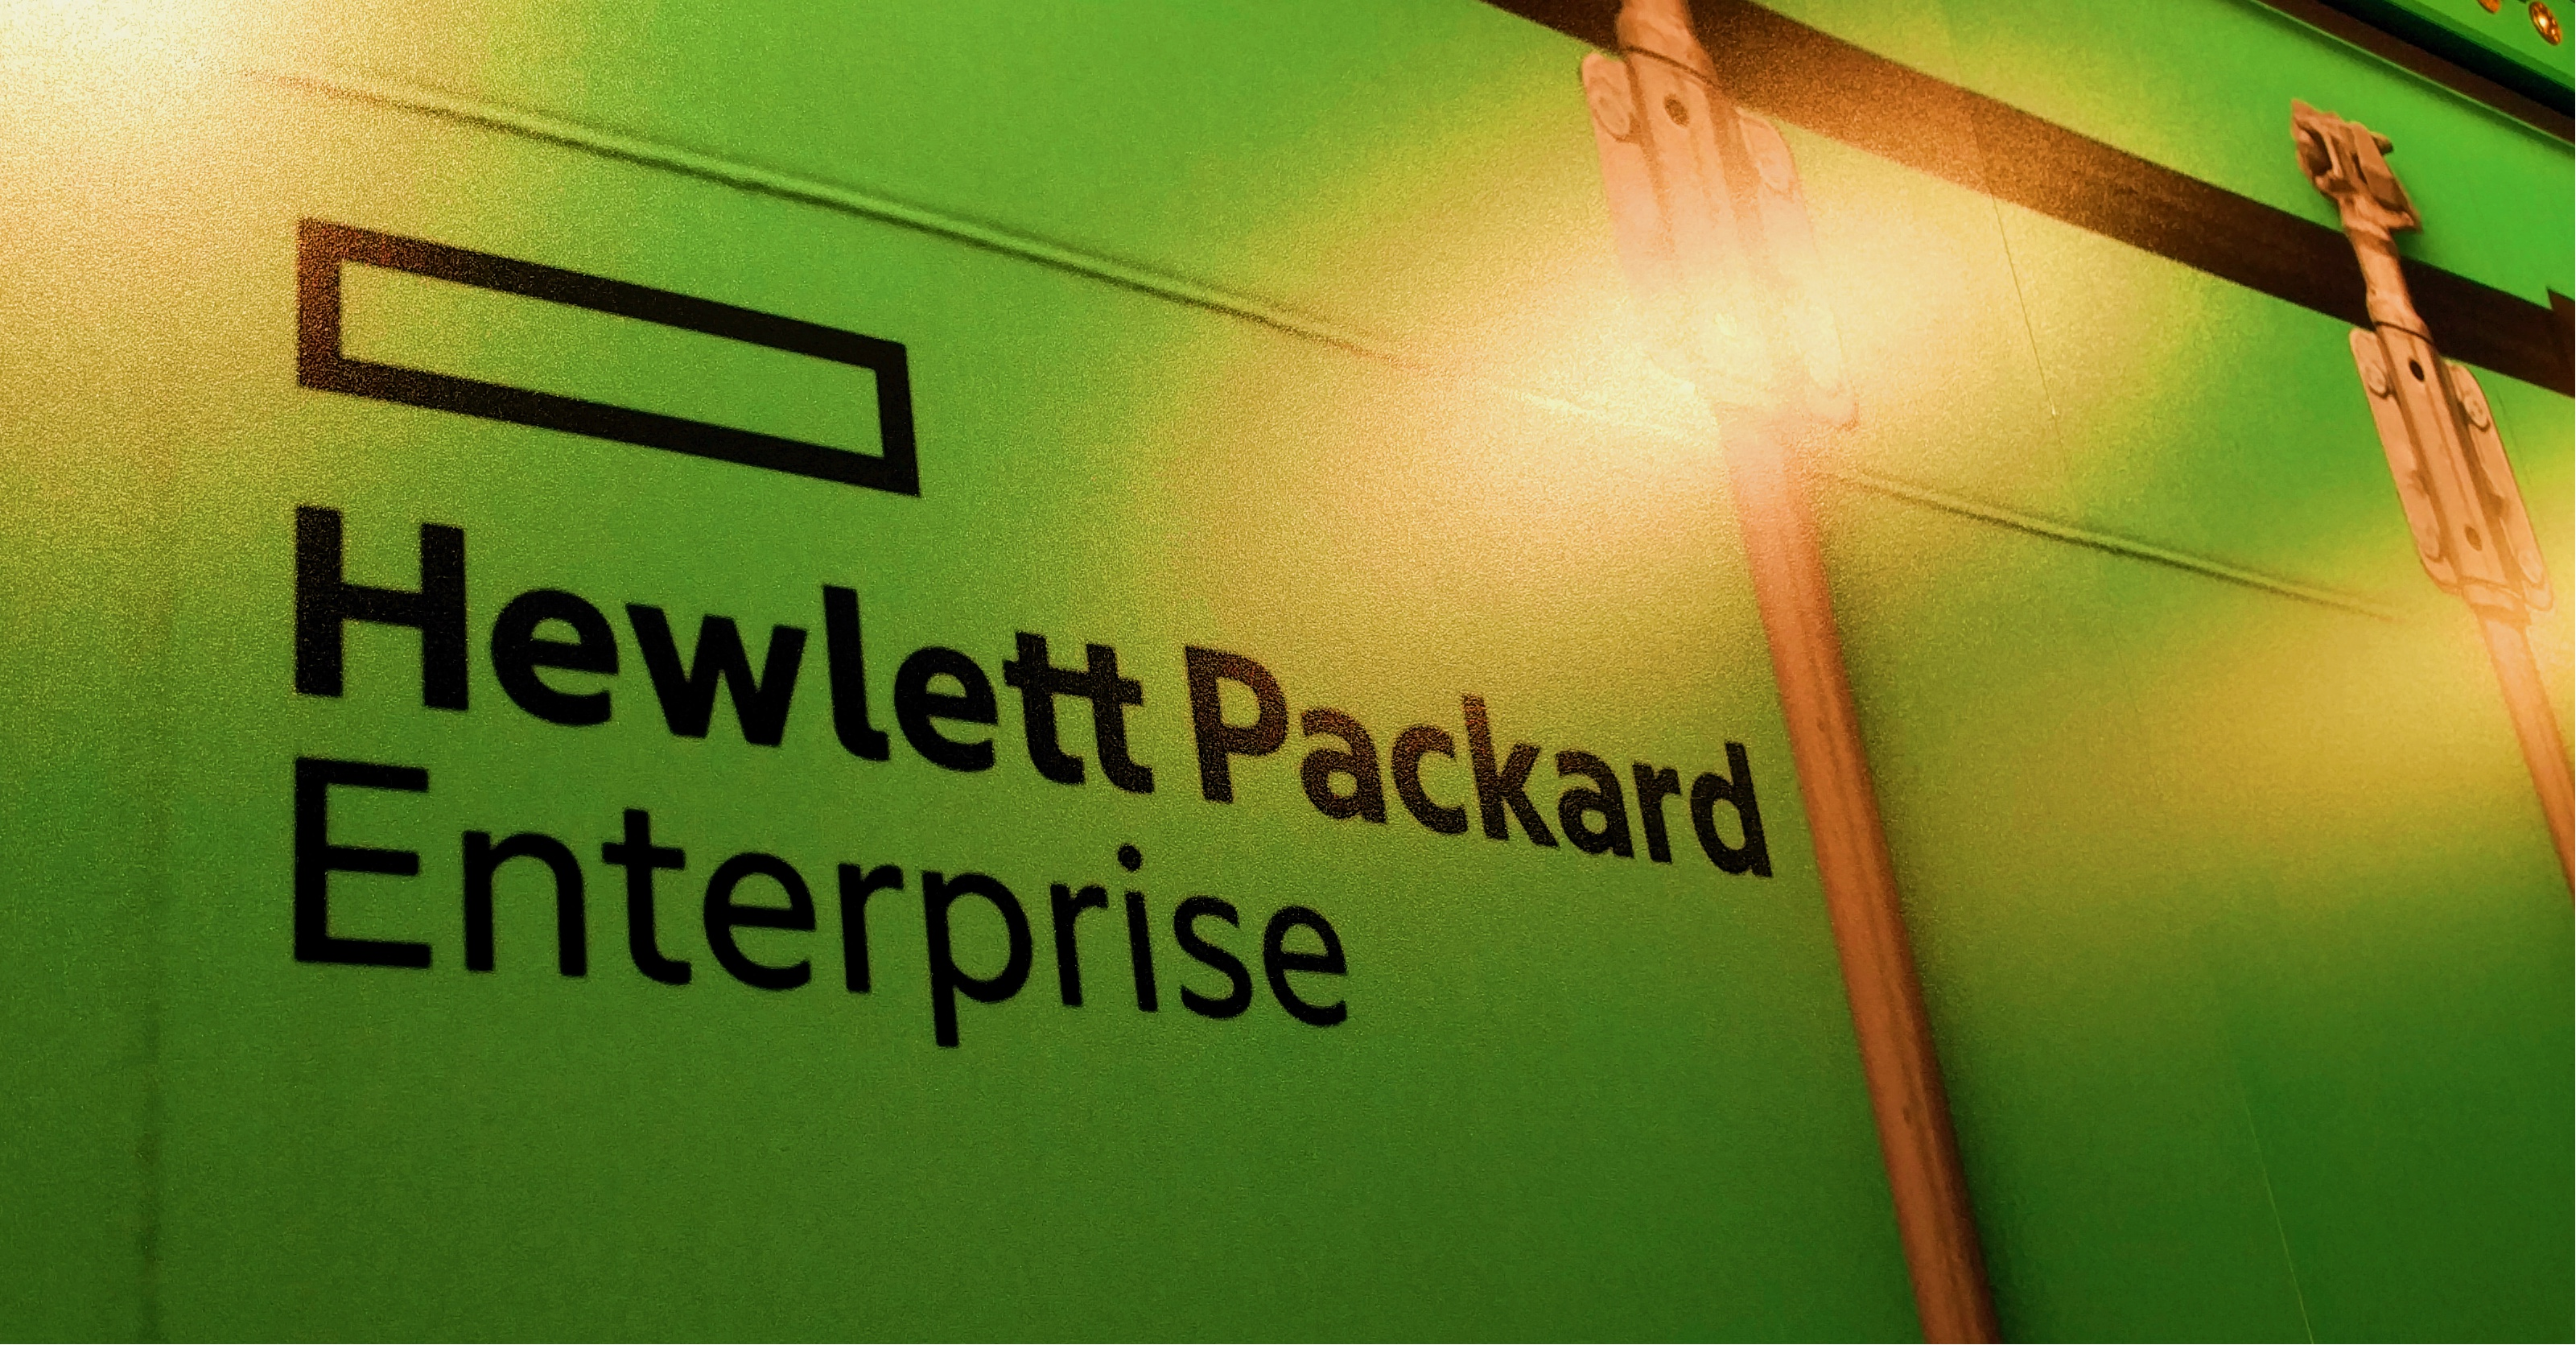 Hewlett Packard Enterprise Company (HPE) - Lookout Watch List active stock